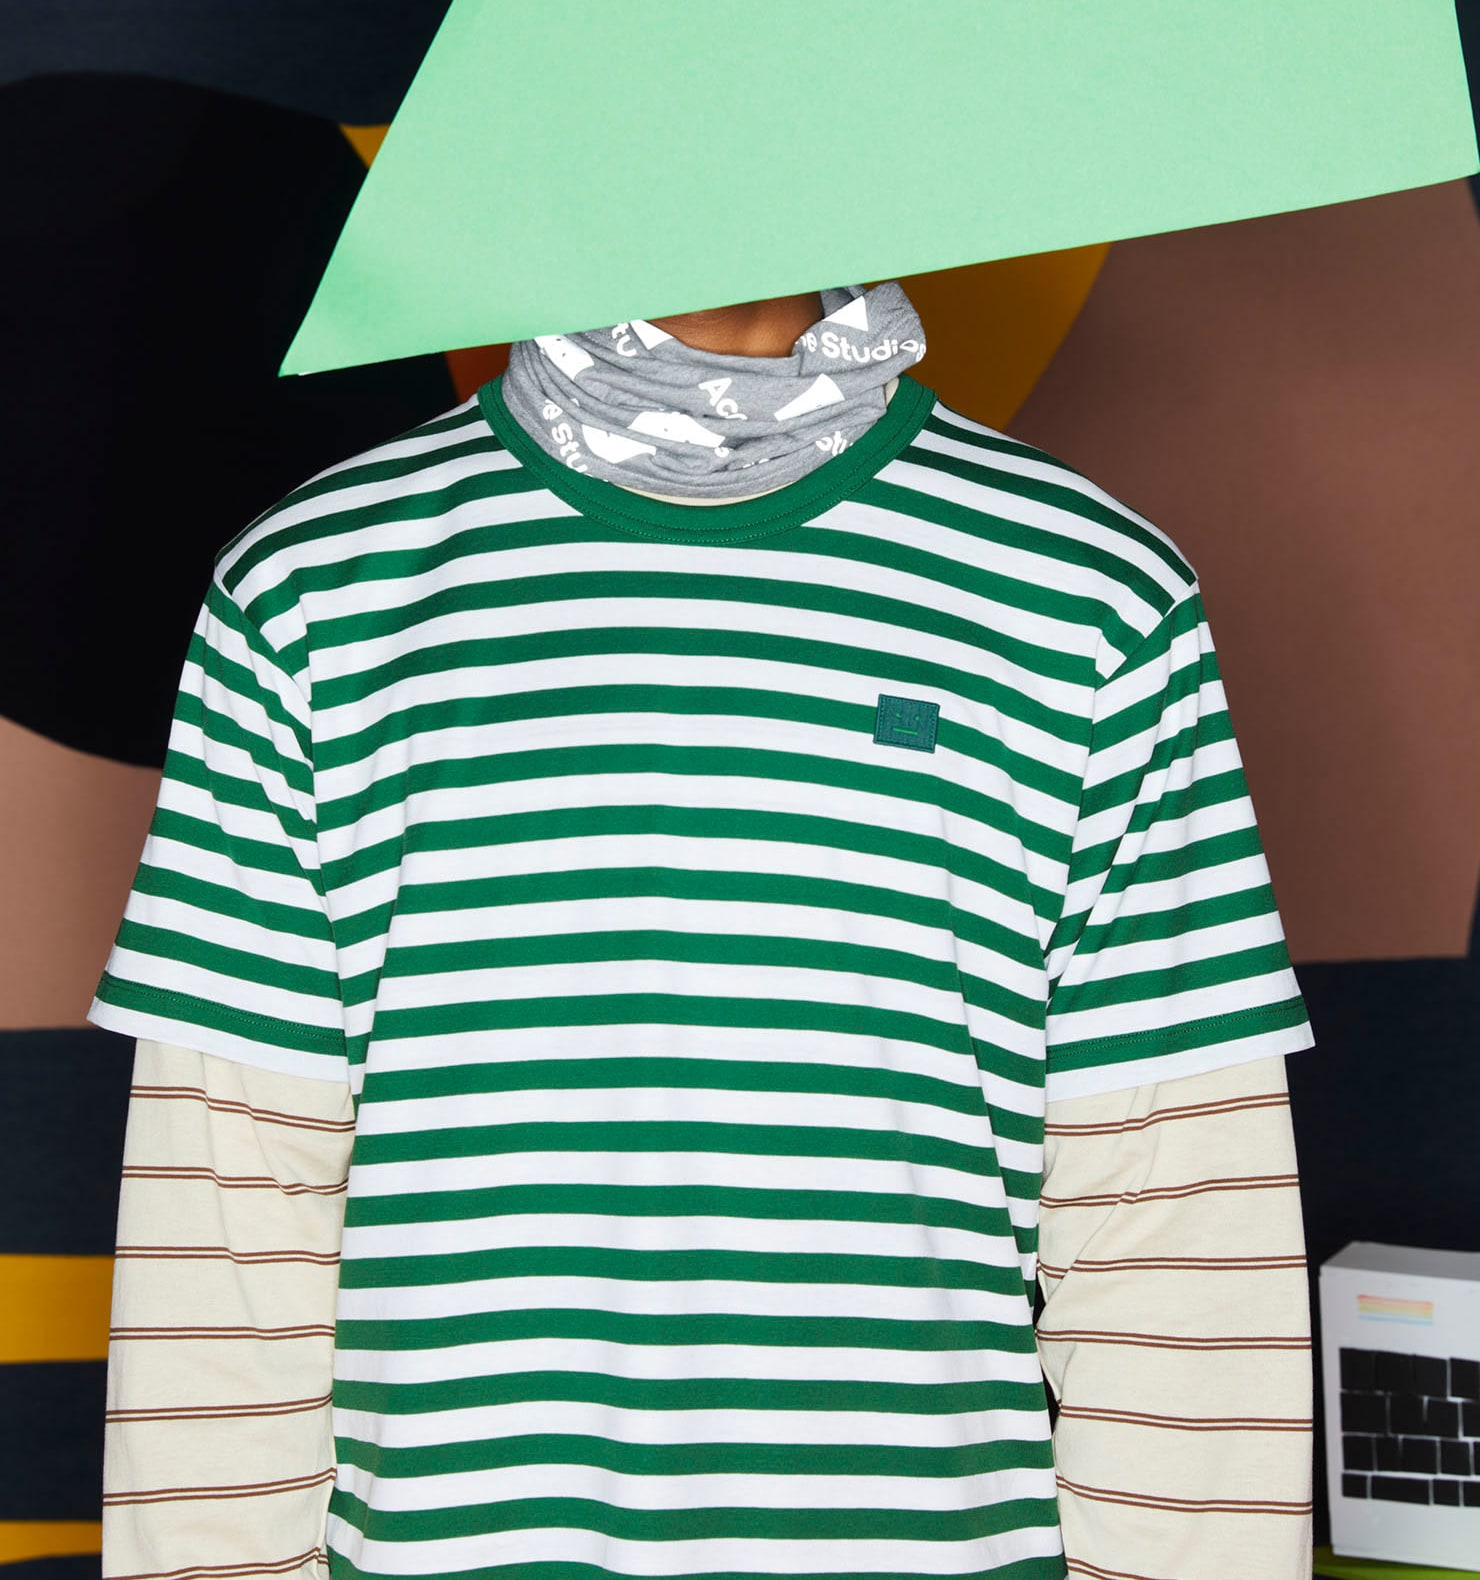 Acne Studios Fall/Winter 2020 Face Collection